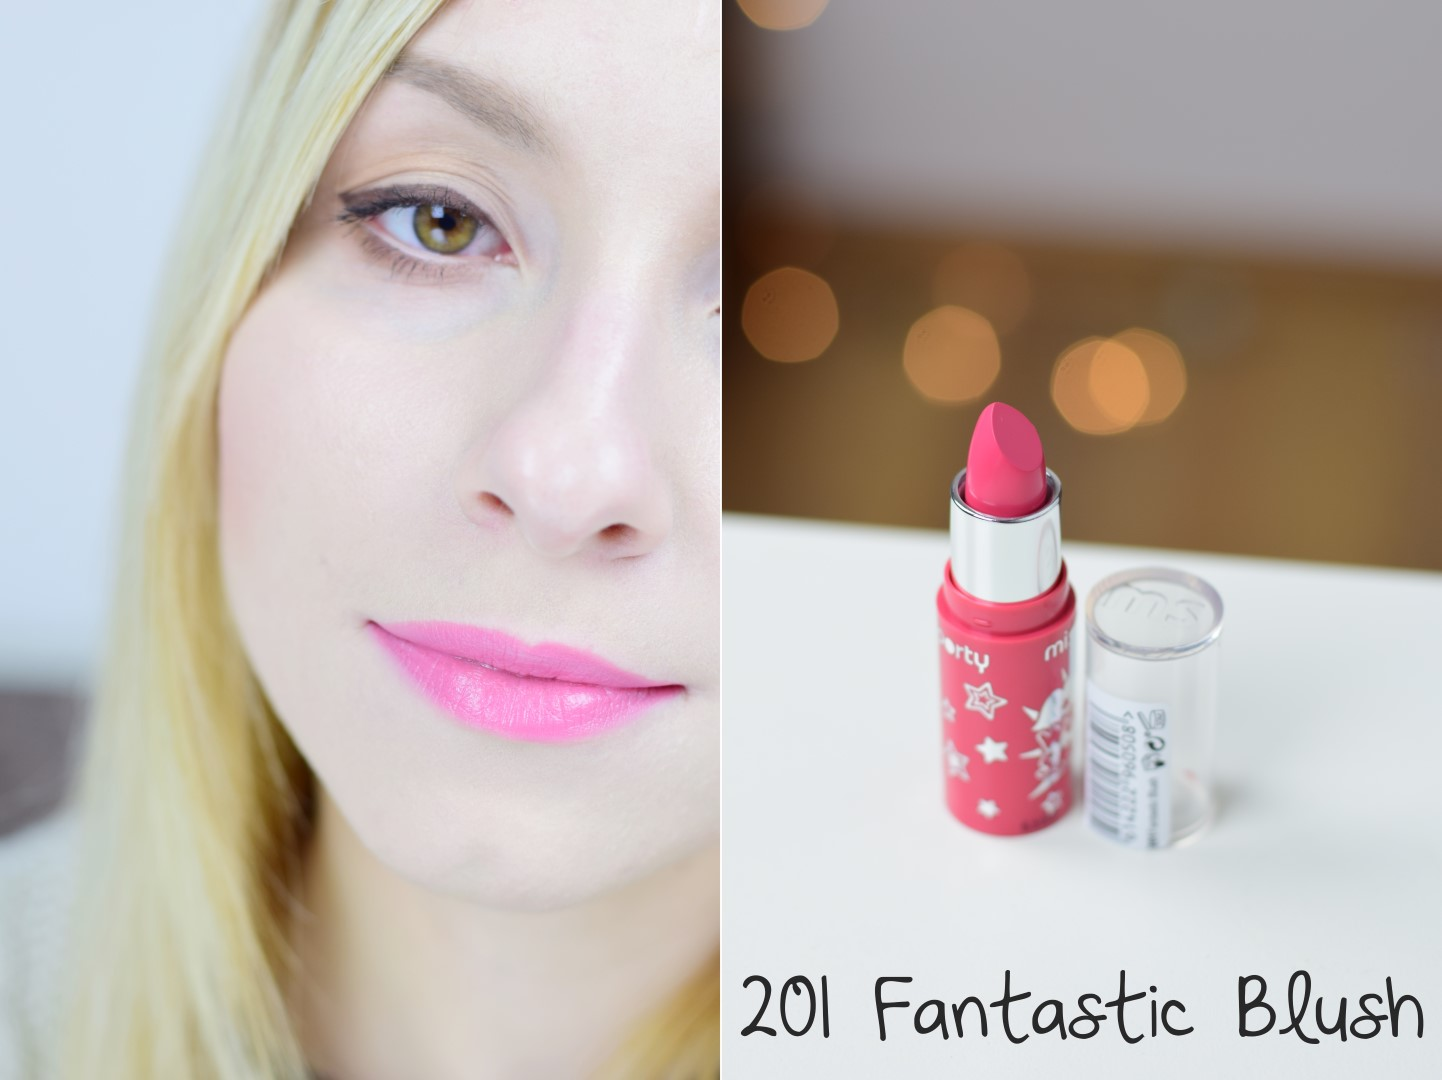 miss_sporty_wonder_smooth_blog_opinia_recenzja_swatche_fantastic_blush_201